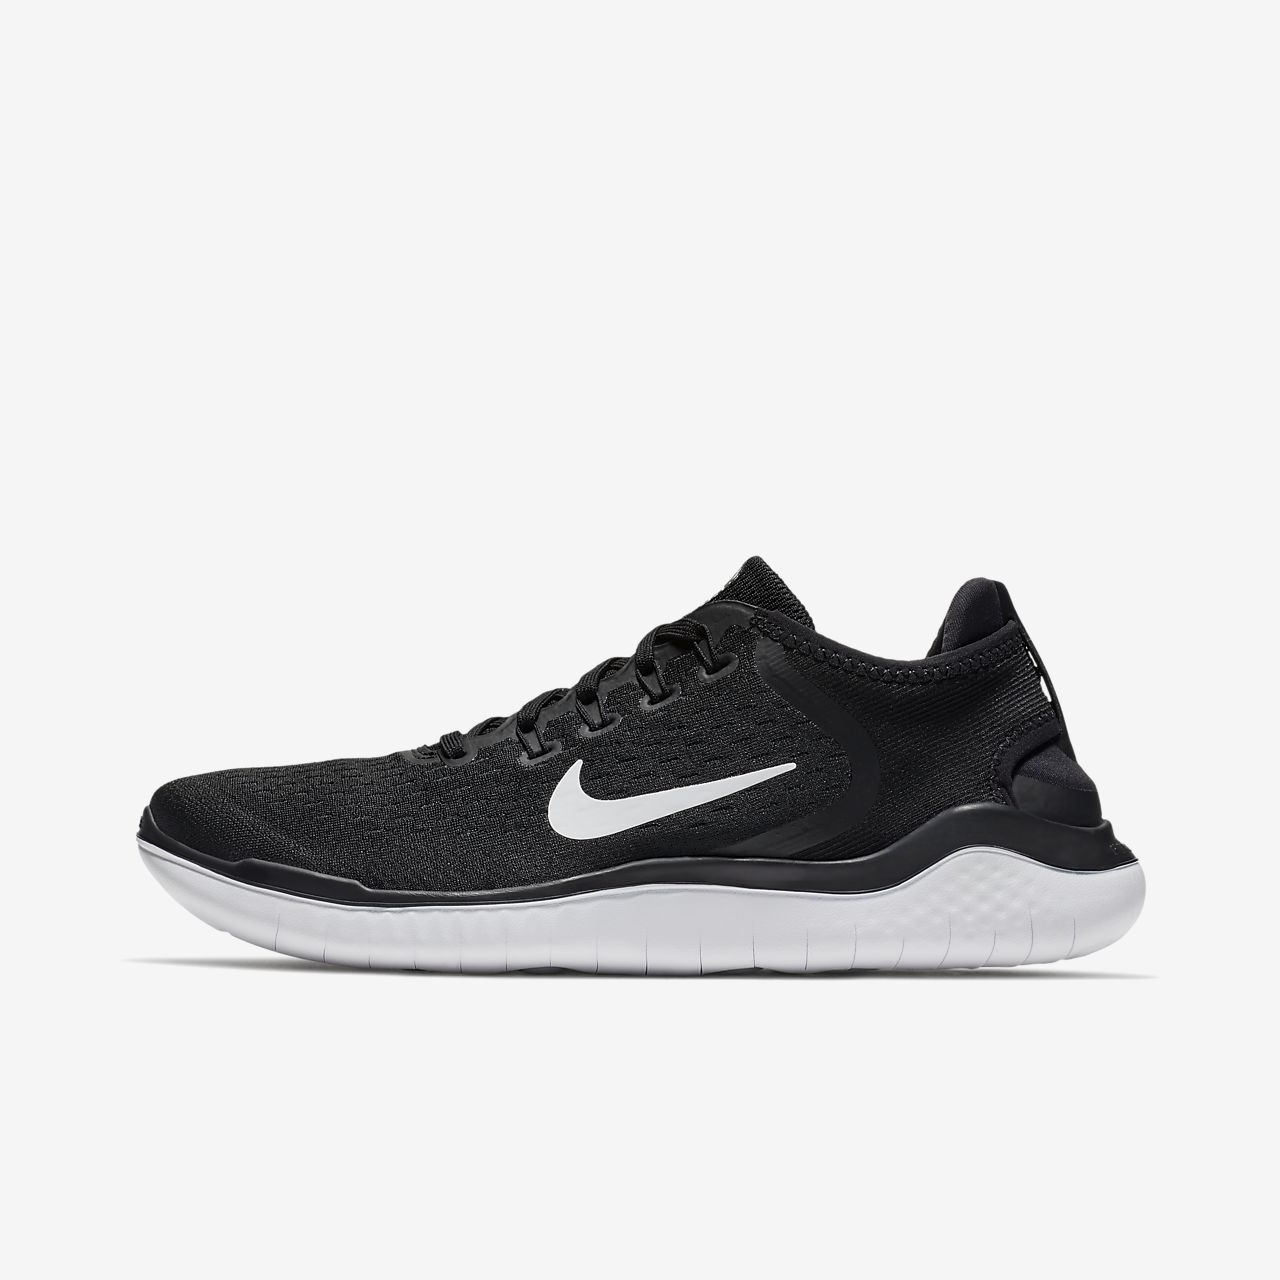 info for 2a15f d1898 Men s Running Shoe. Nike Free RN 2018